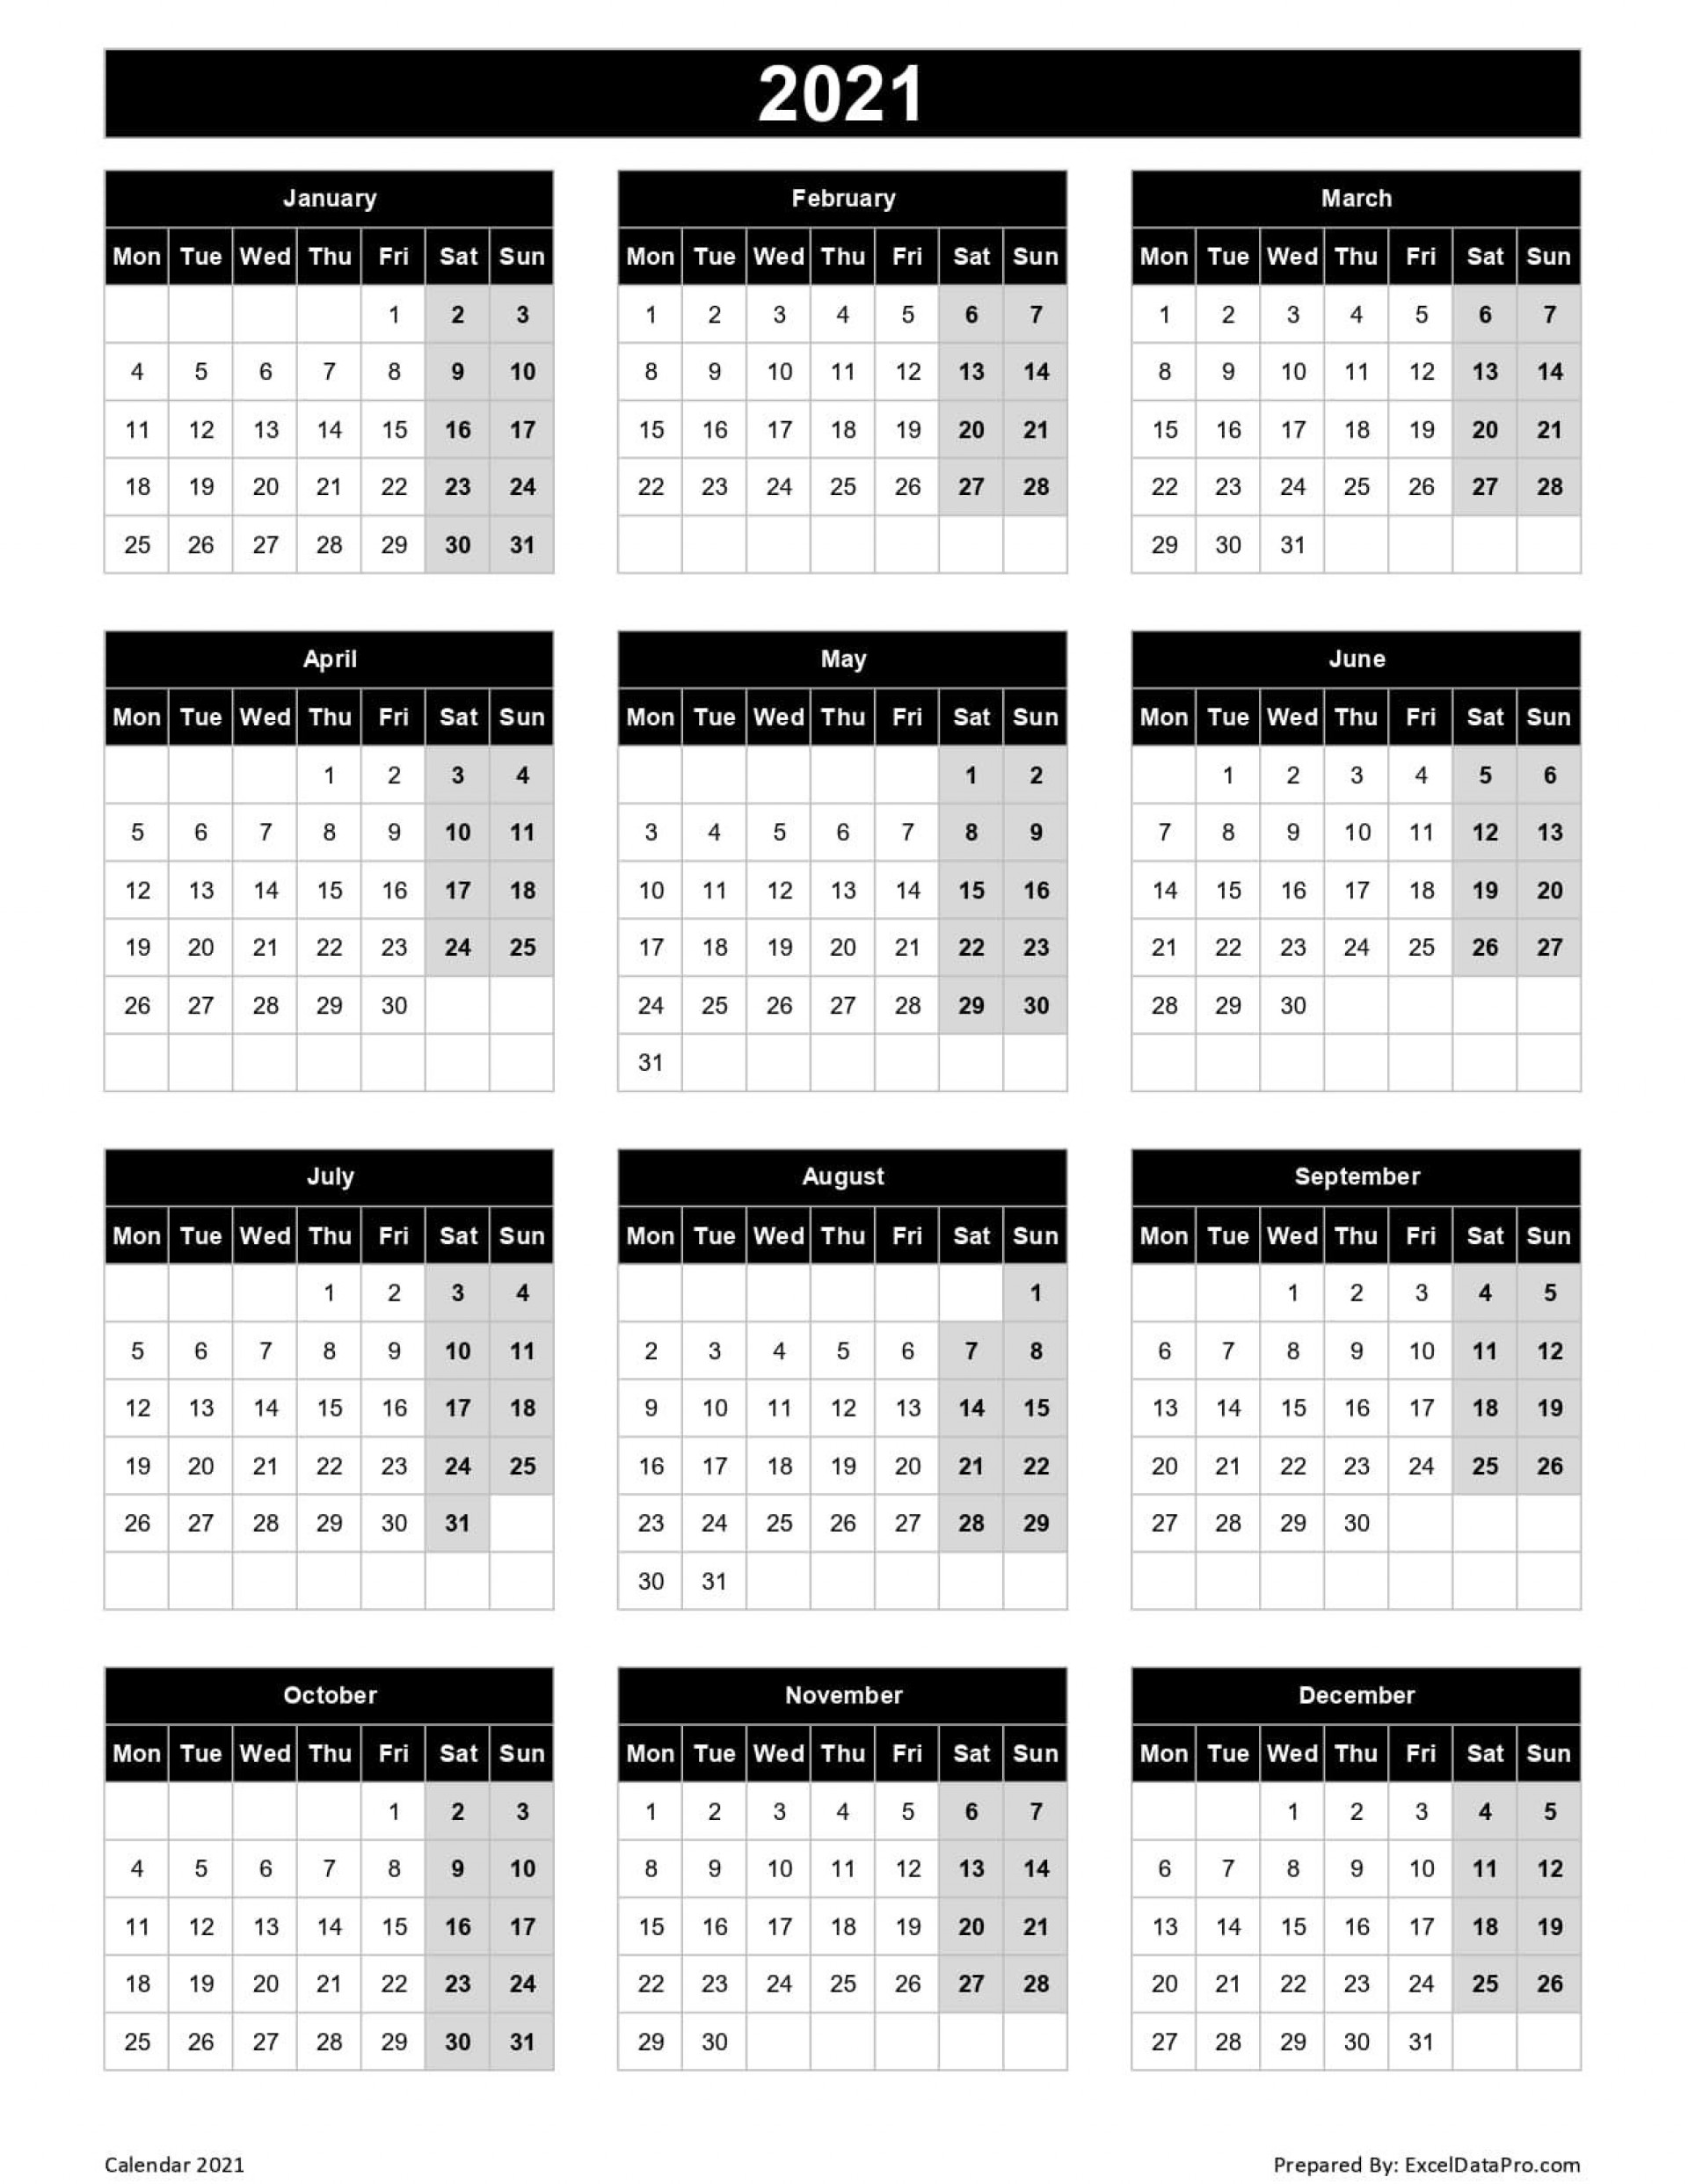 003 Marvelou 2021 Work Week Calendar Template Excel Concept  Uk Malaysia Weekly1920